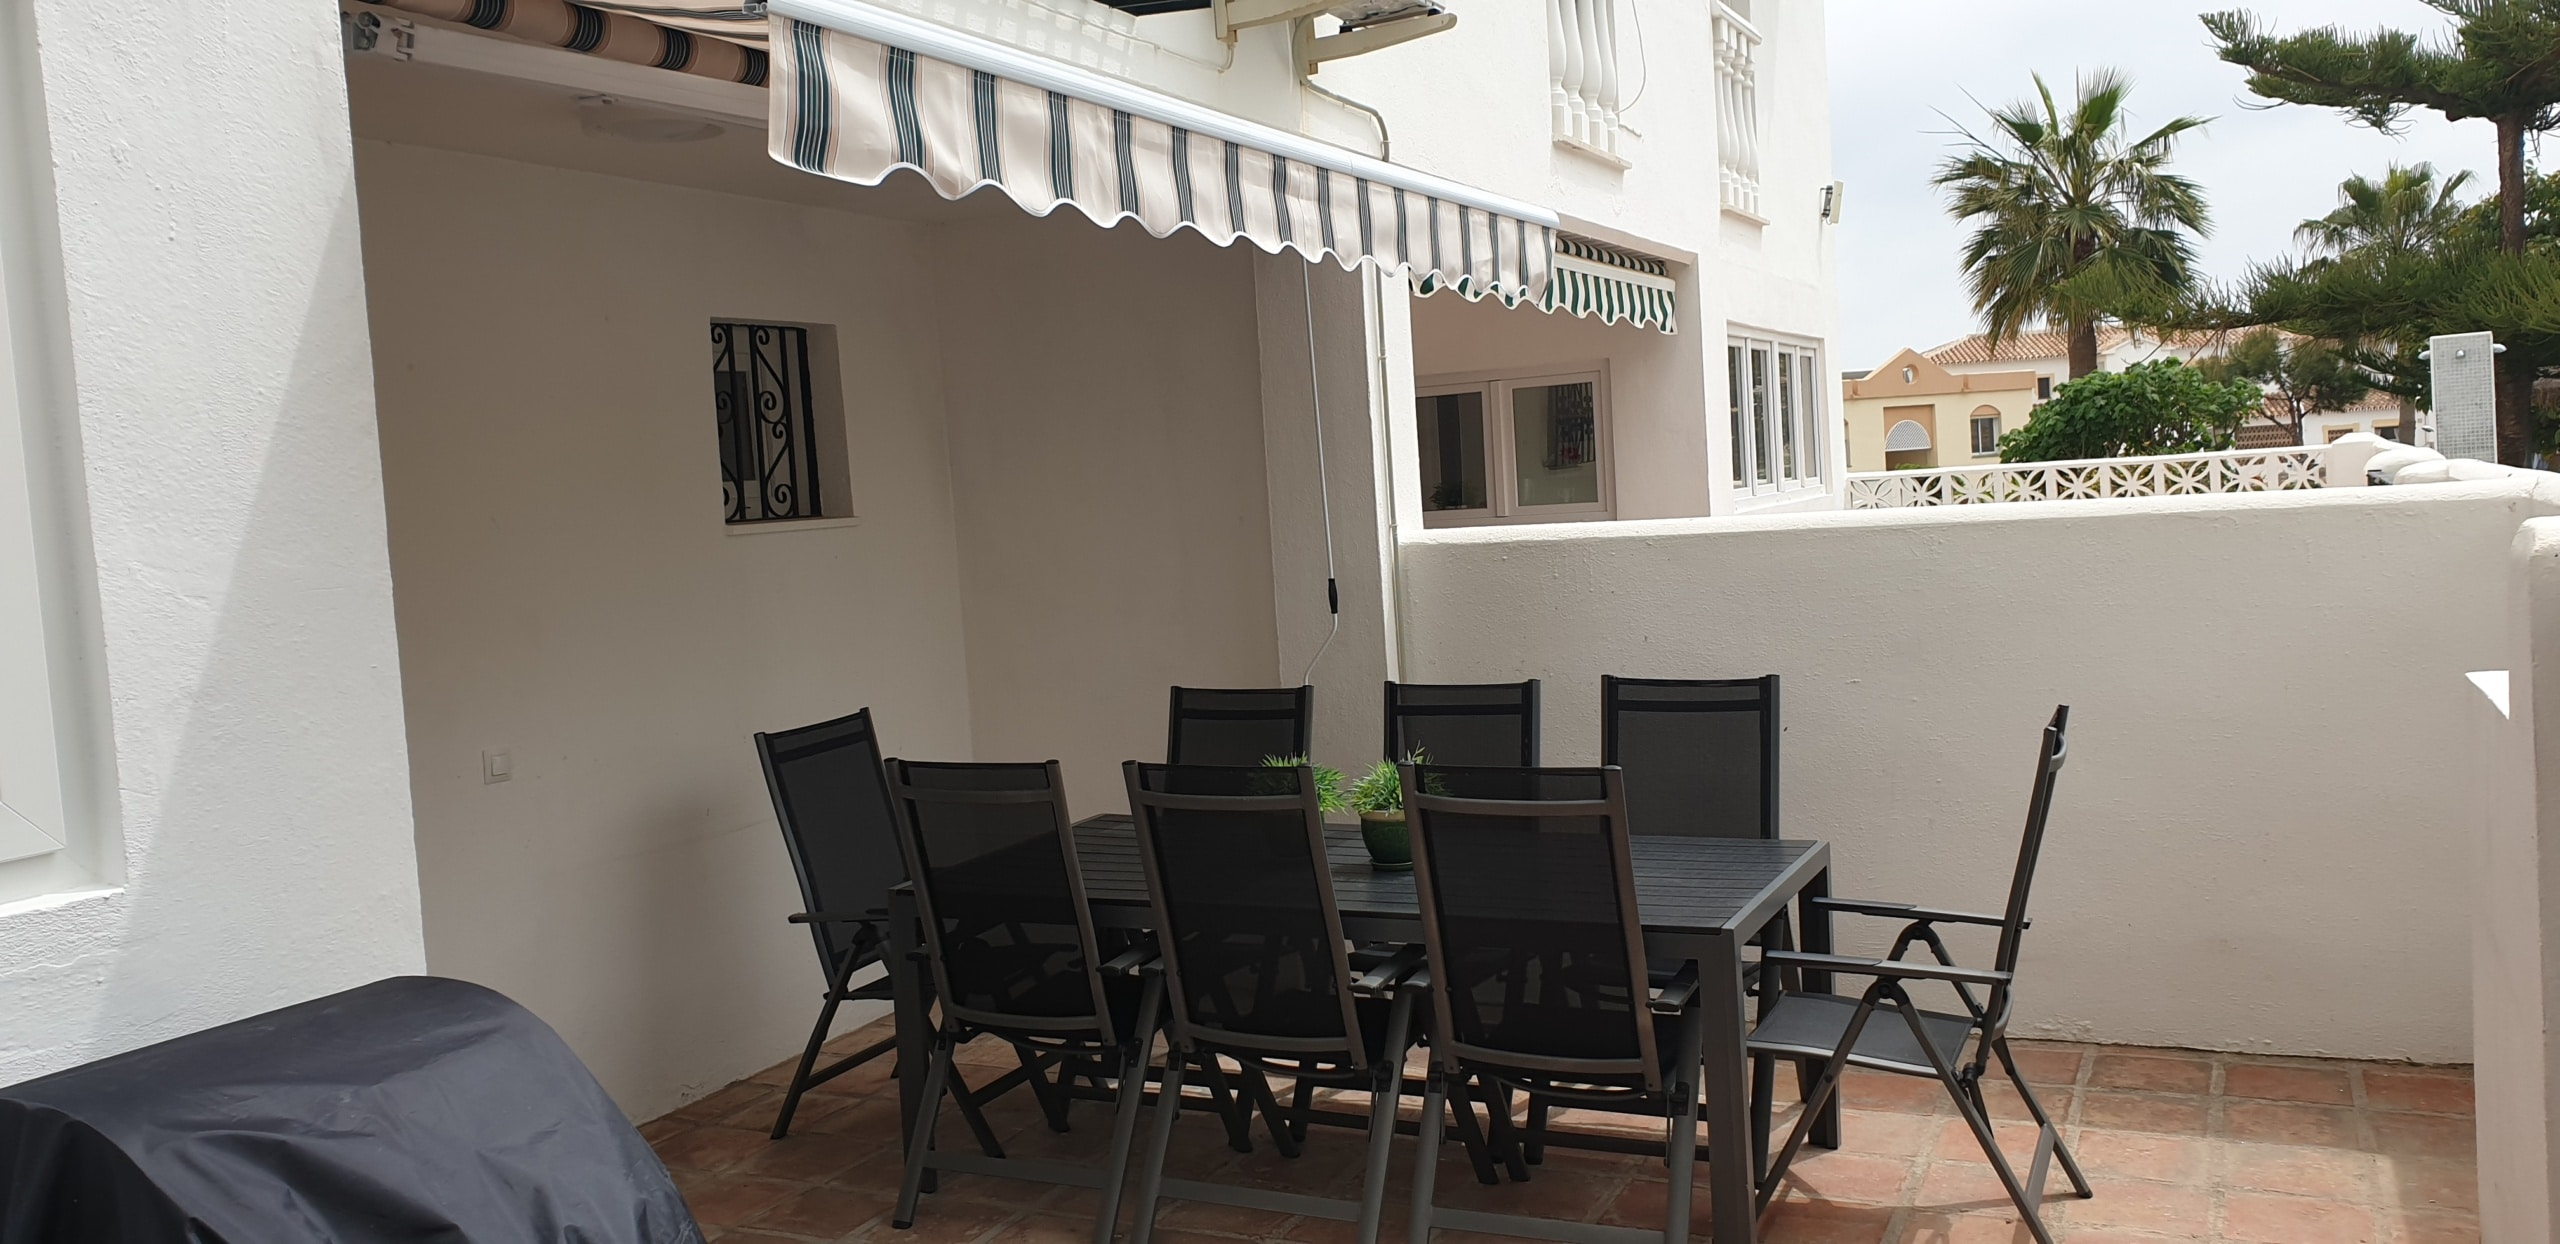 Dining area at the back